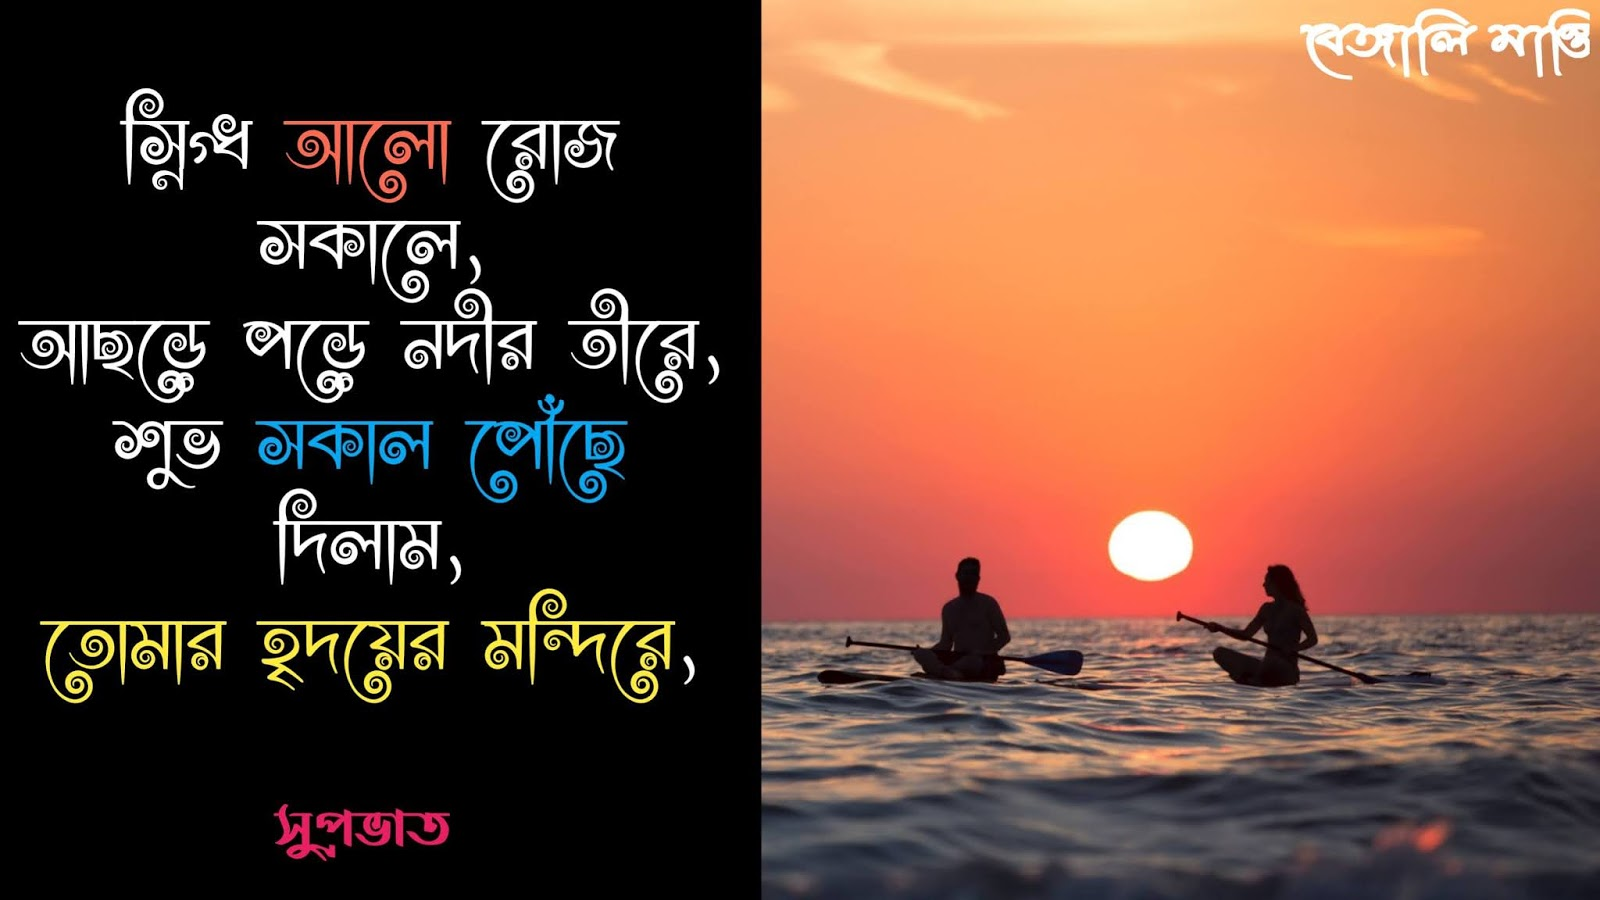 good morning image in bengali download